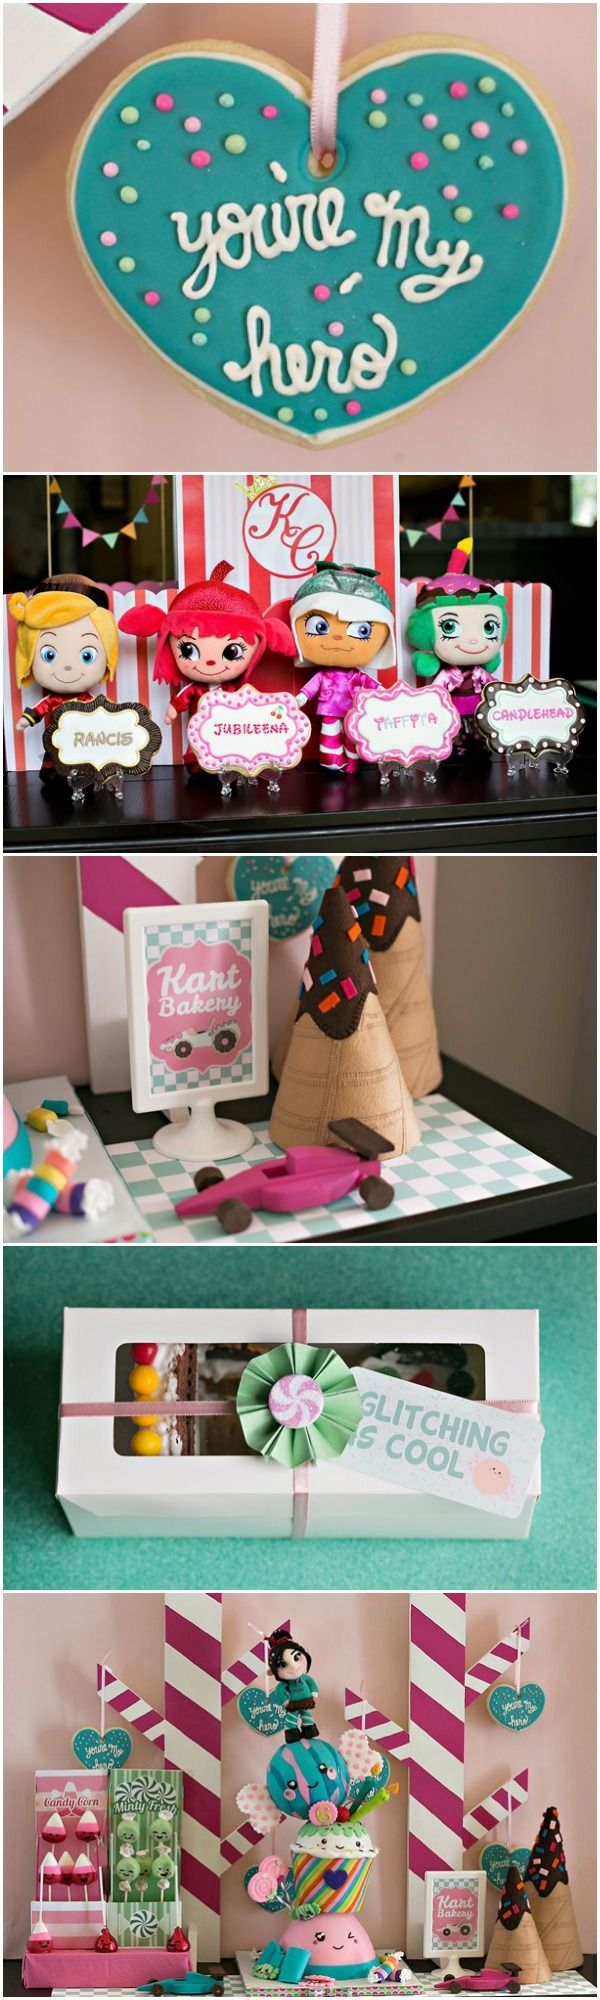 "Wreck-It Ralph ""Sugar Rush"" Party Ideas"